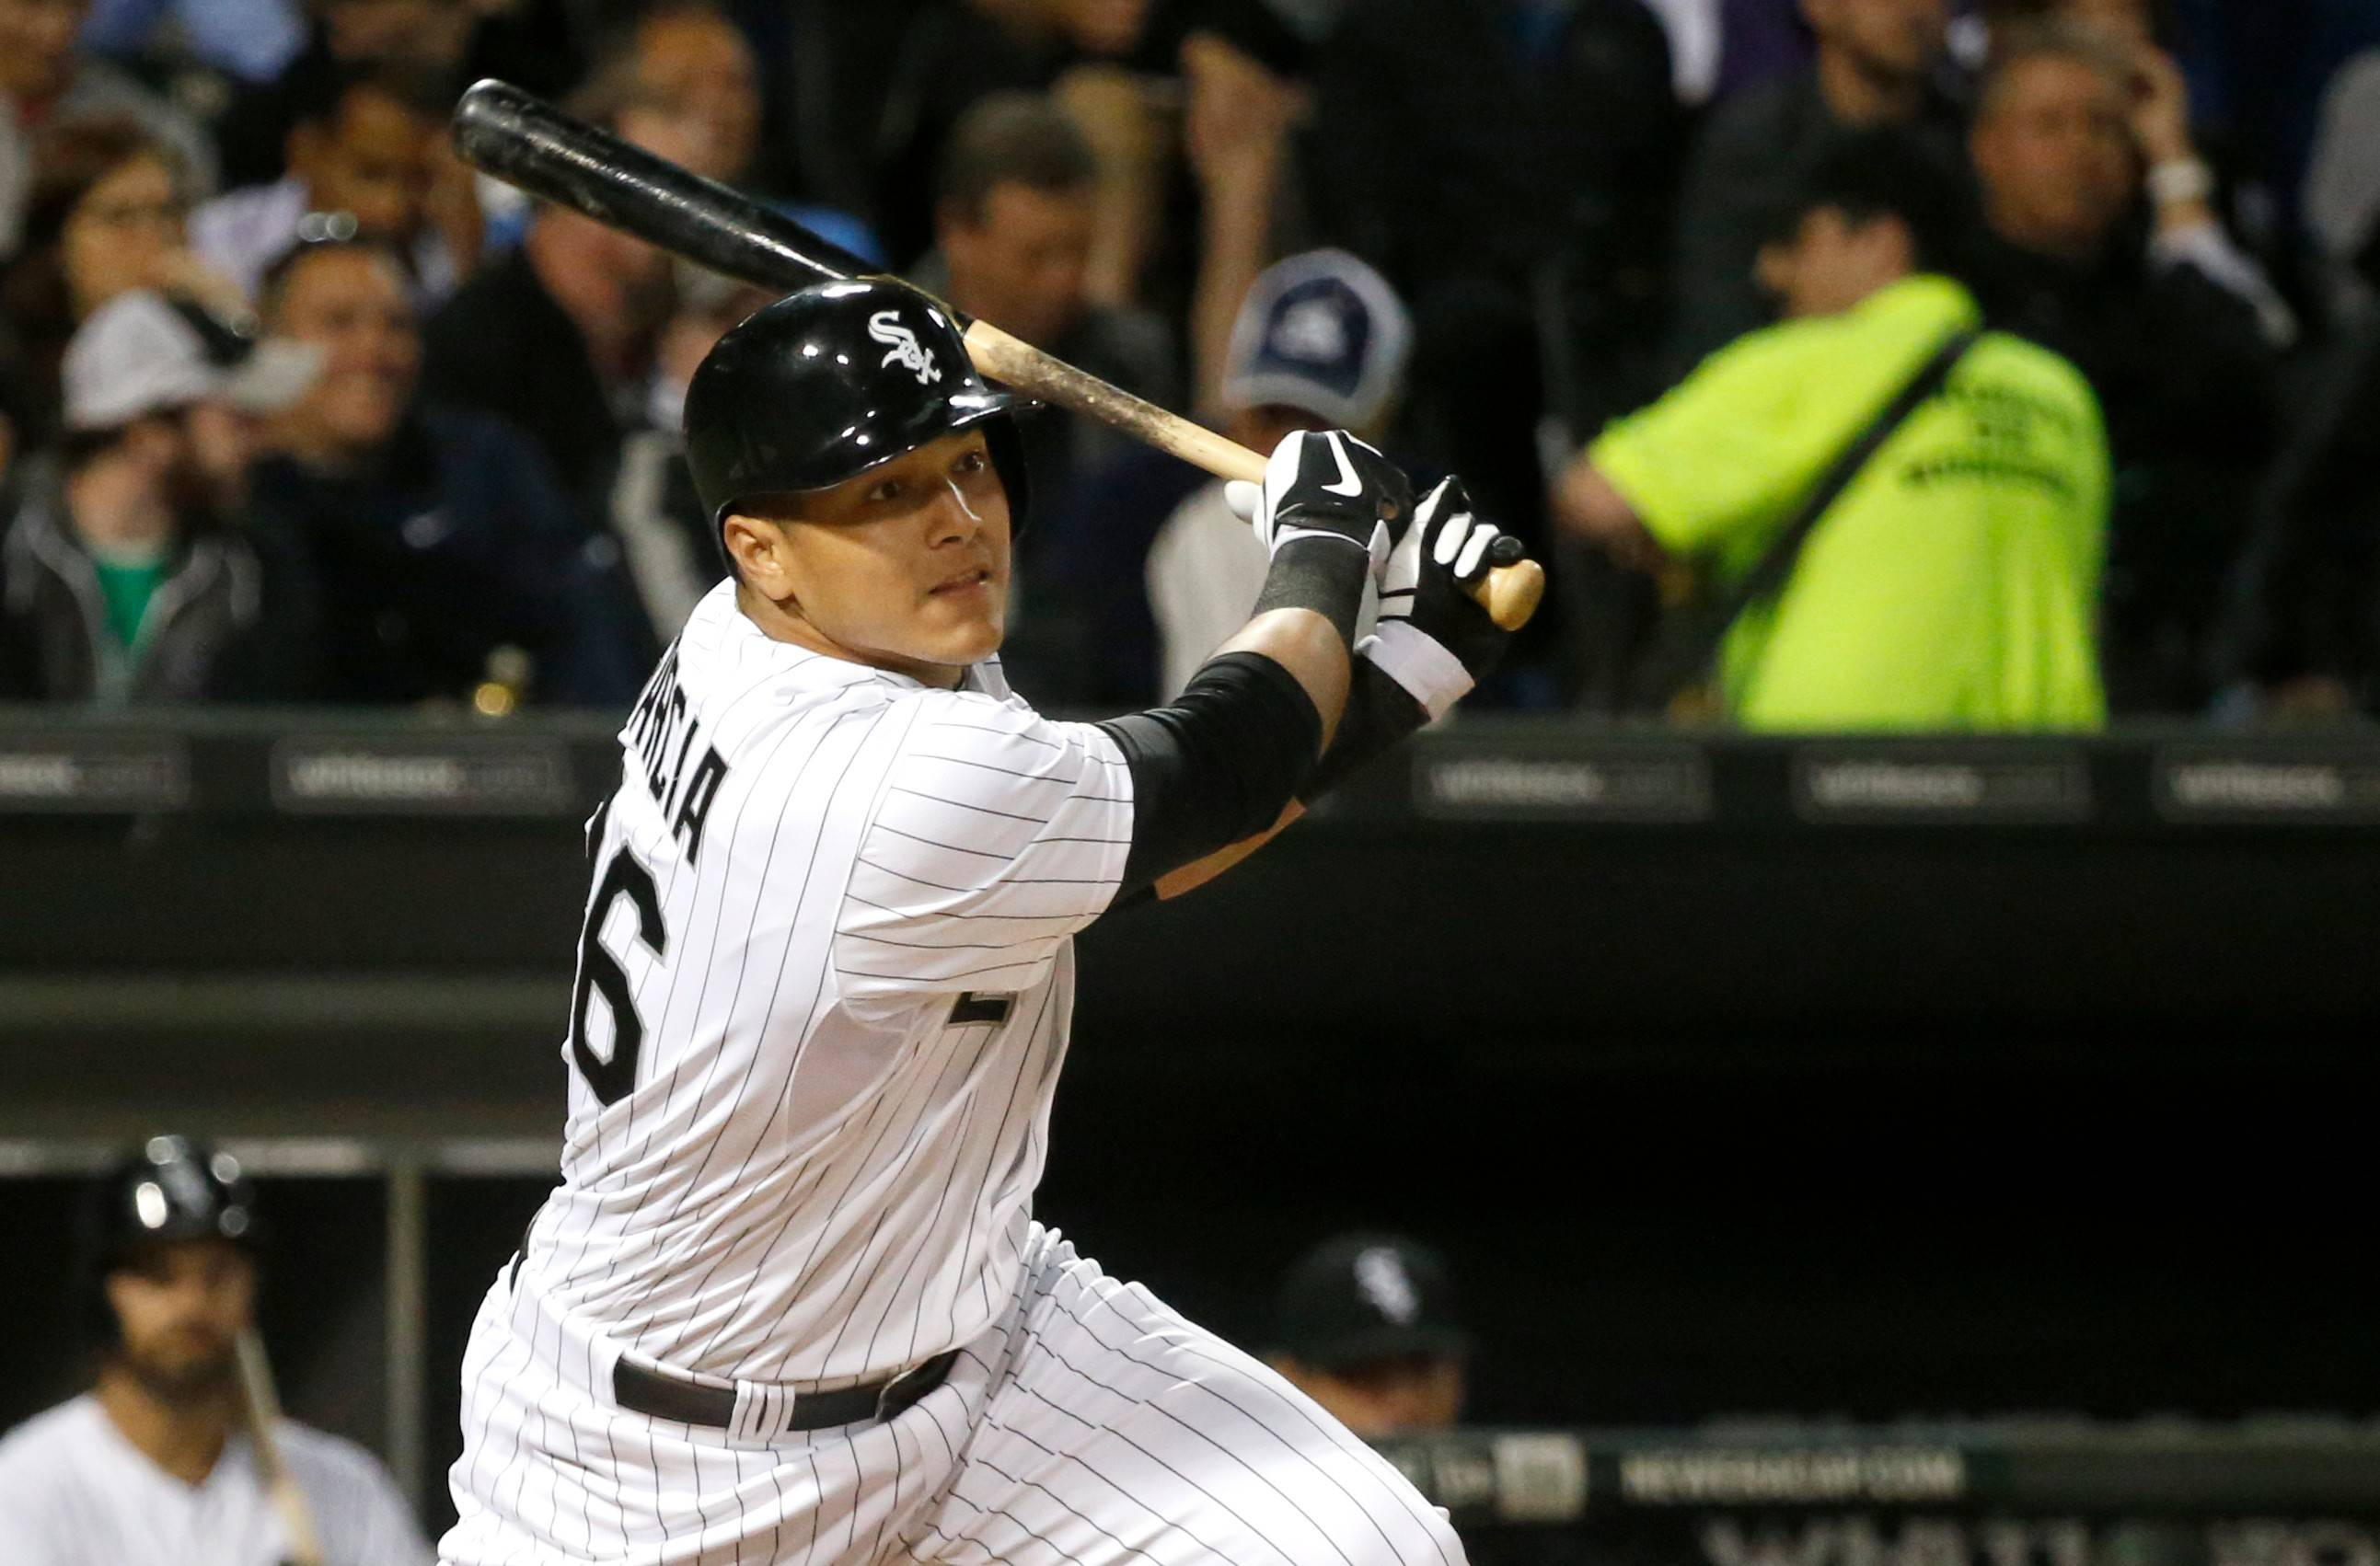 With surgery on his left shoulder complete, White Sox outfielder Avisail Garcia now faces six-months of rehab in order to be ready for the start of the 2015 spring training.